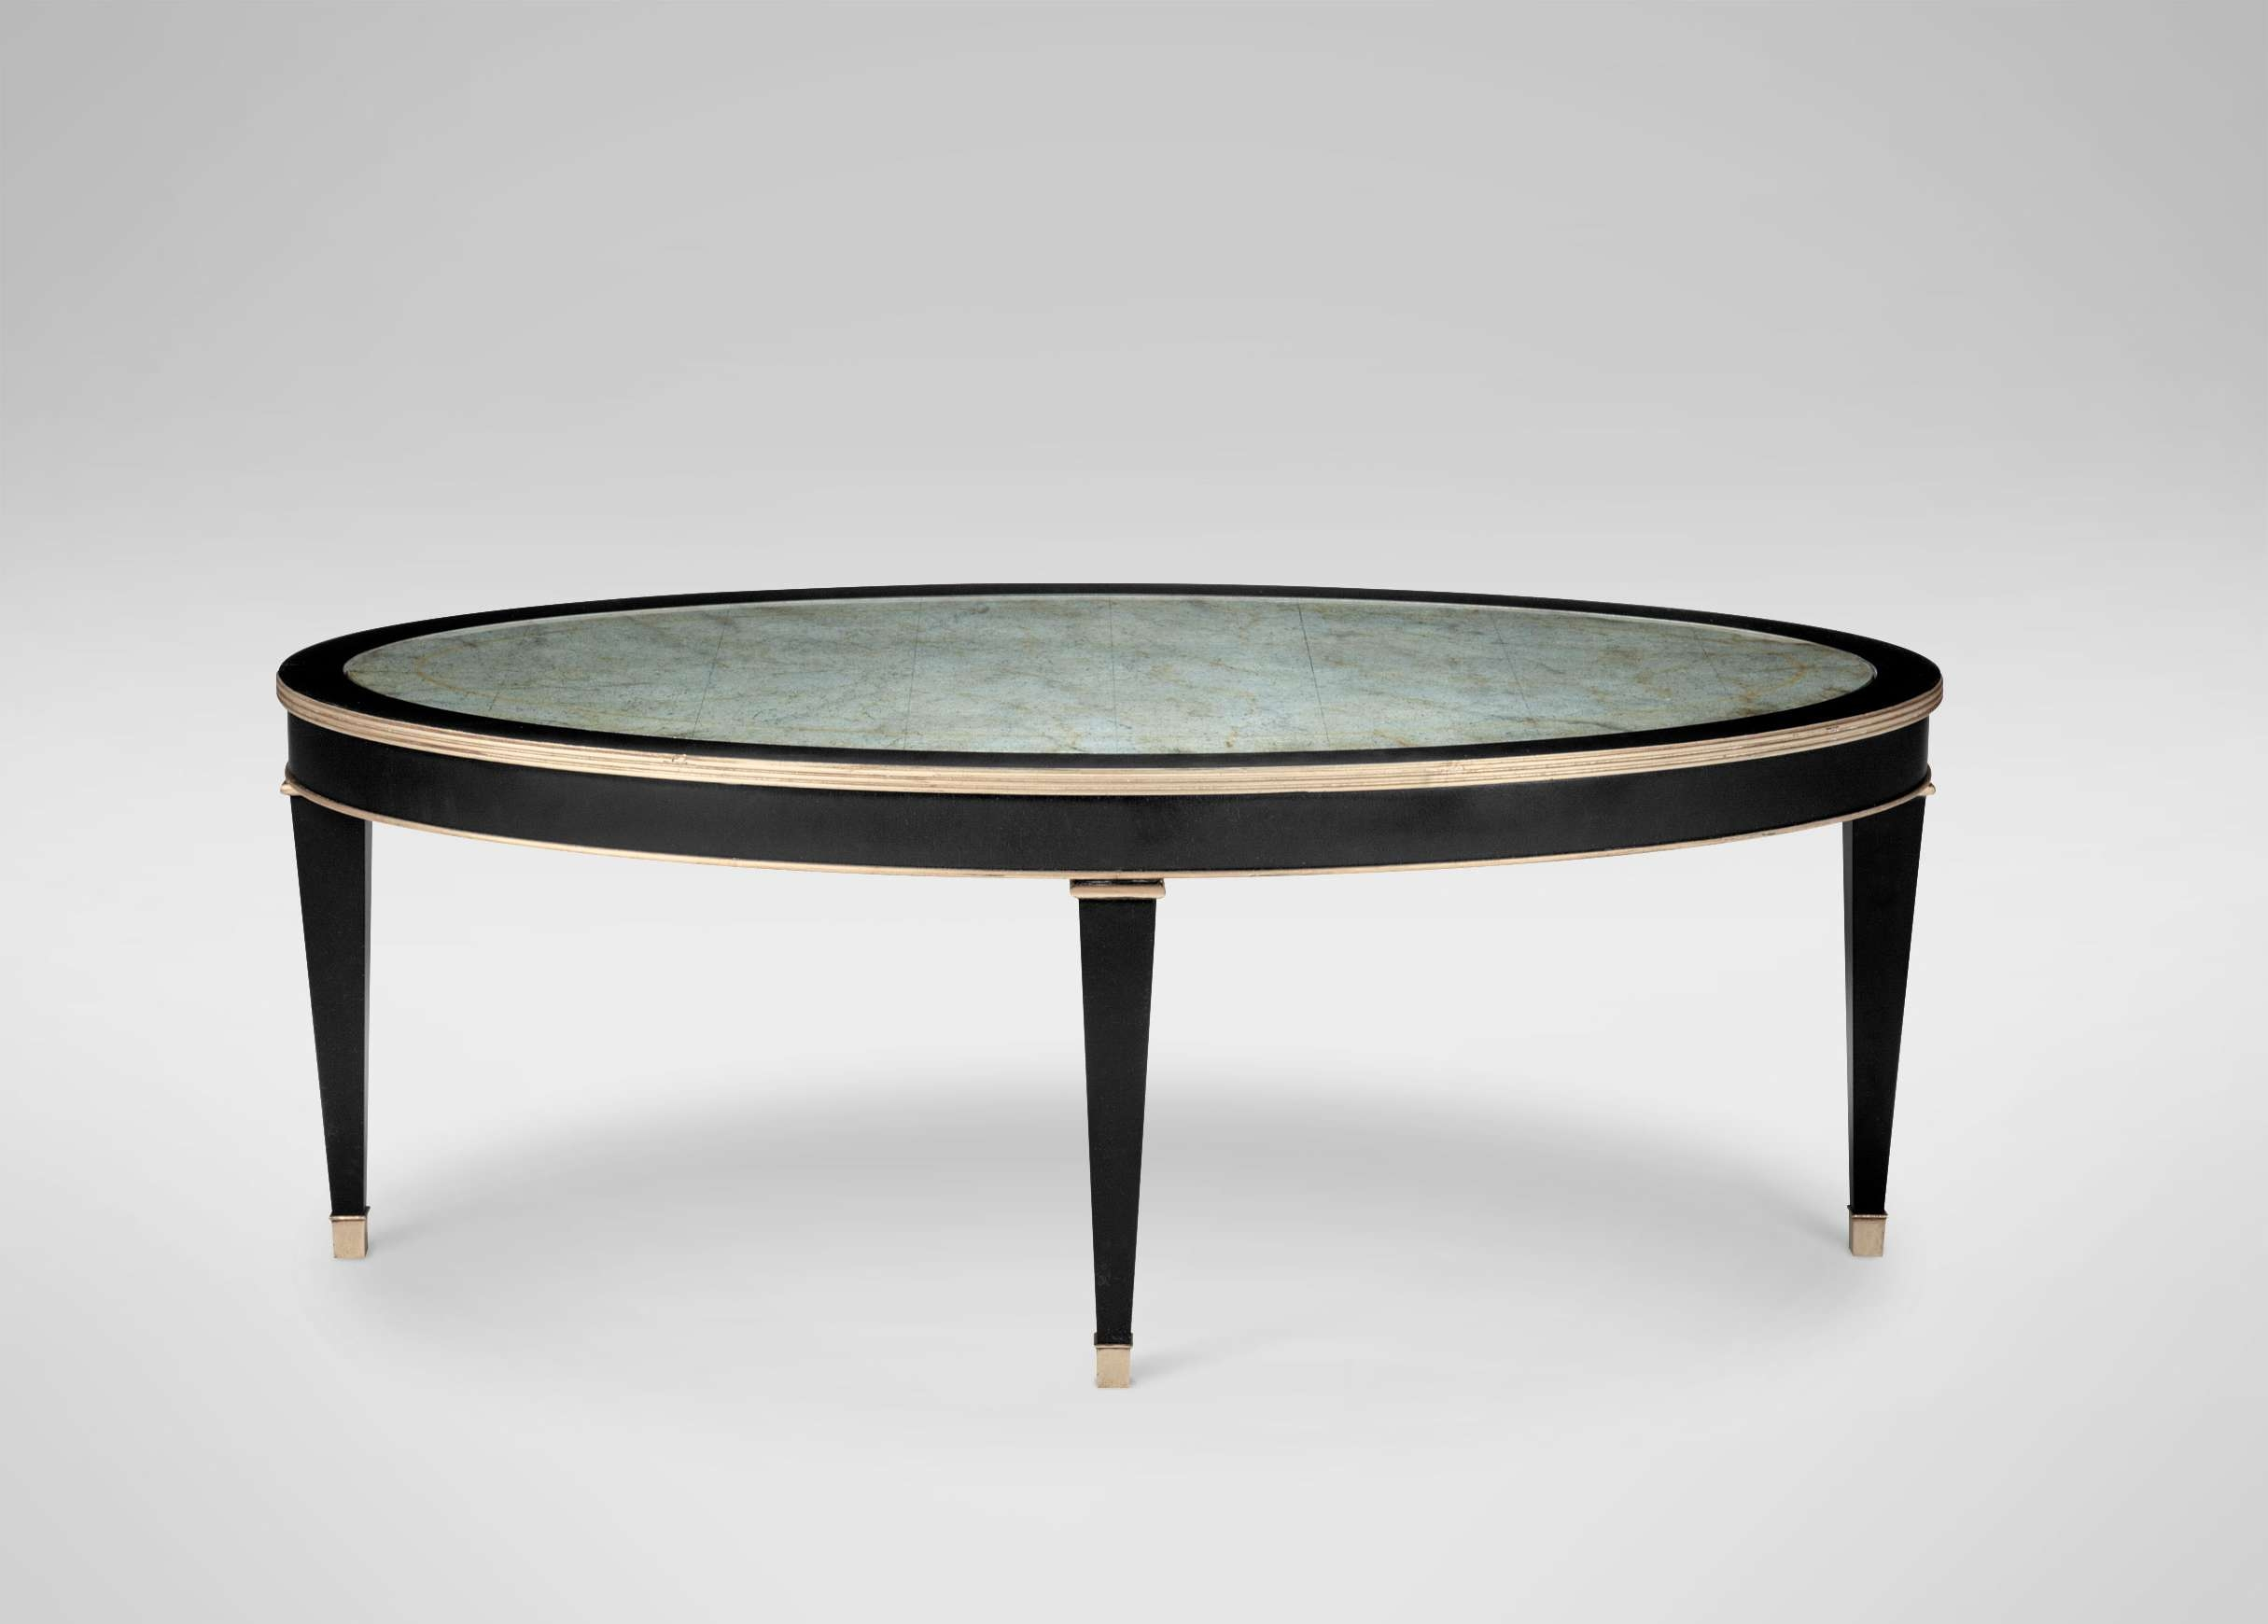 Famous Bronze Coffee Table Glass Top For Coffee Table : Gold Coffee Table Ikea Target Coffee Table Circular (View 9 of 20)